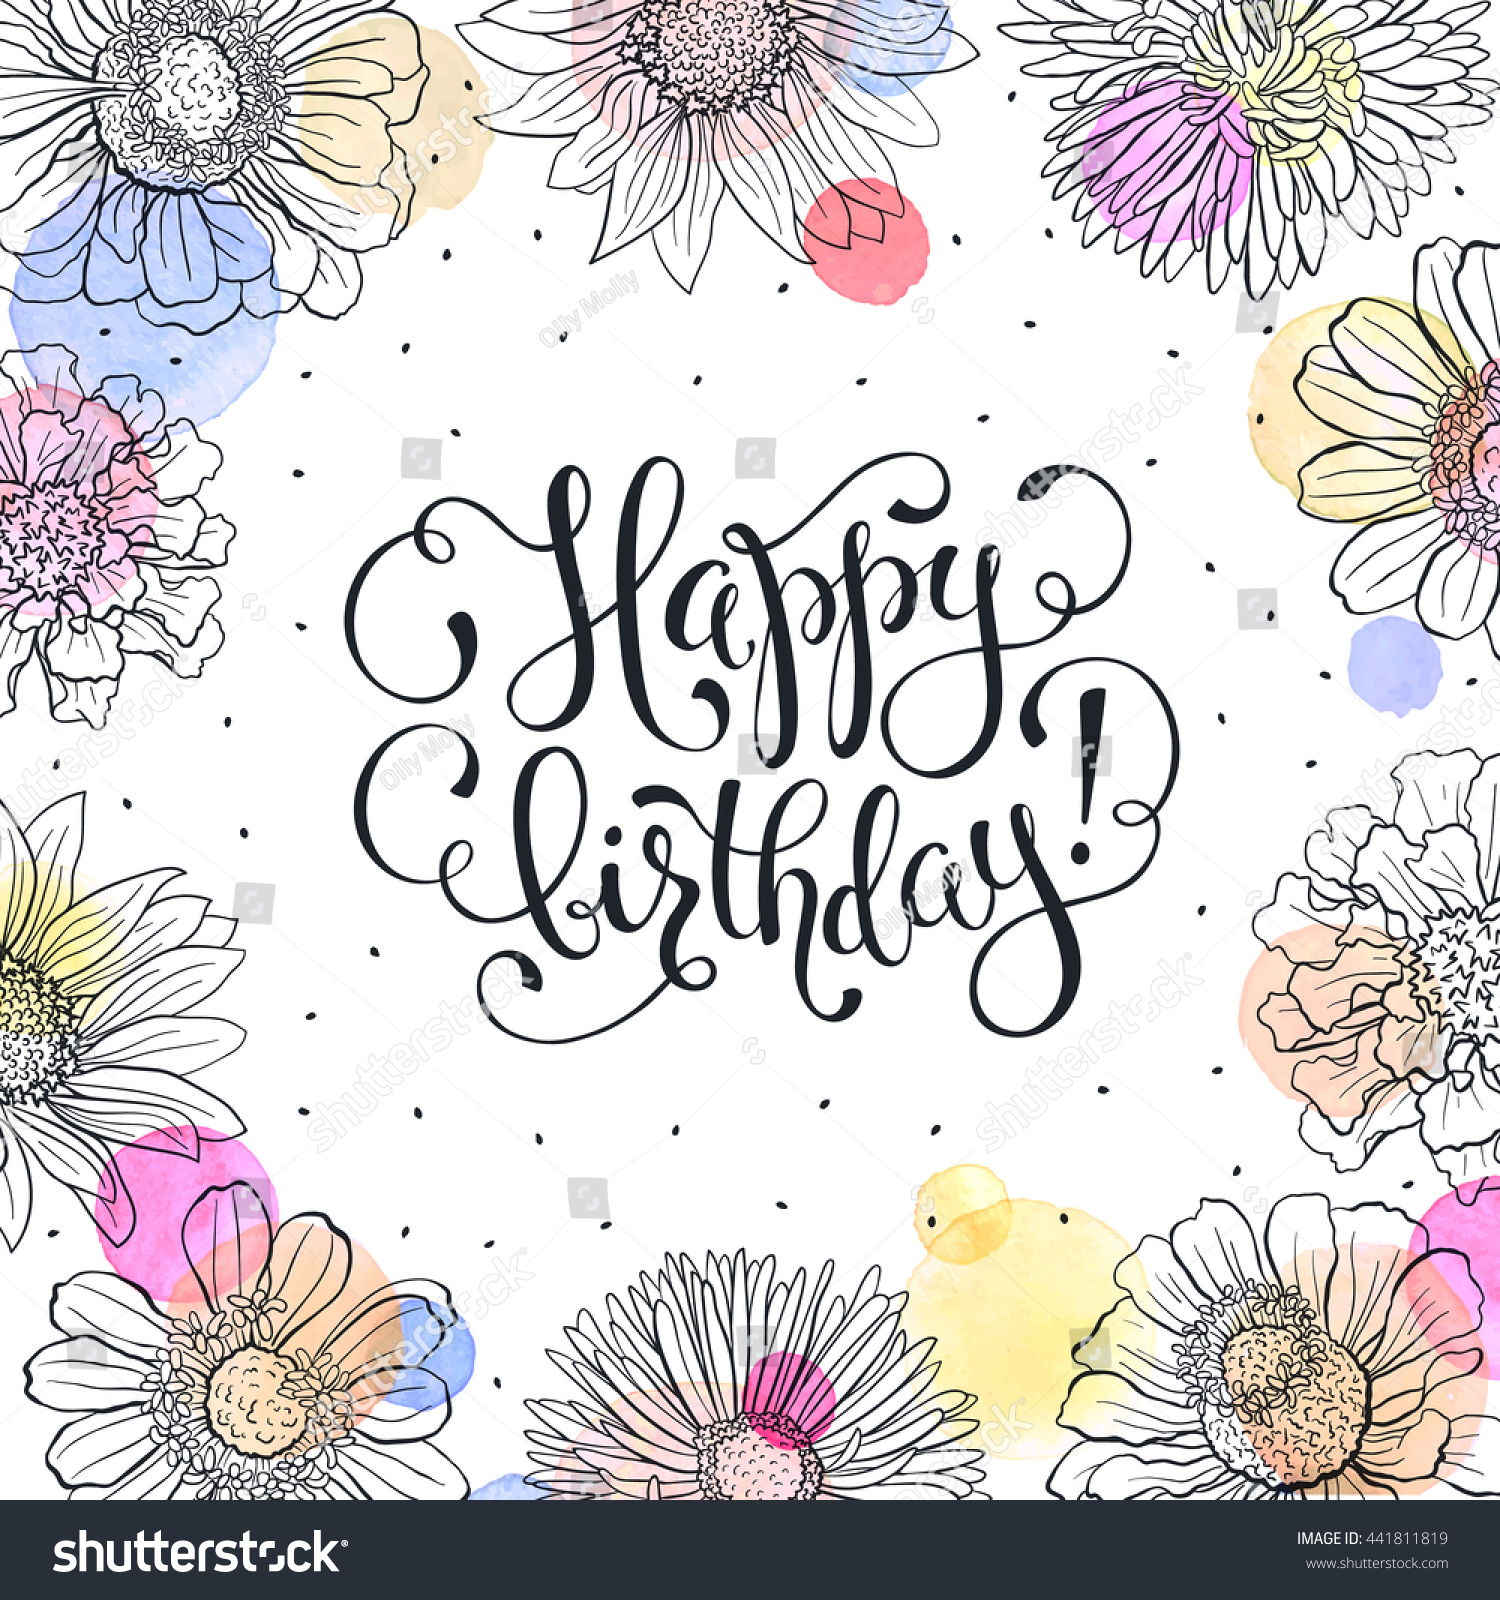 Happy birthday greeting card sketch flowers stock vector 441811819 happy birthday greeting card sketch flowers frame with watercolor spots on white background birthday kristyandbryce Gallery